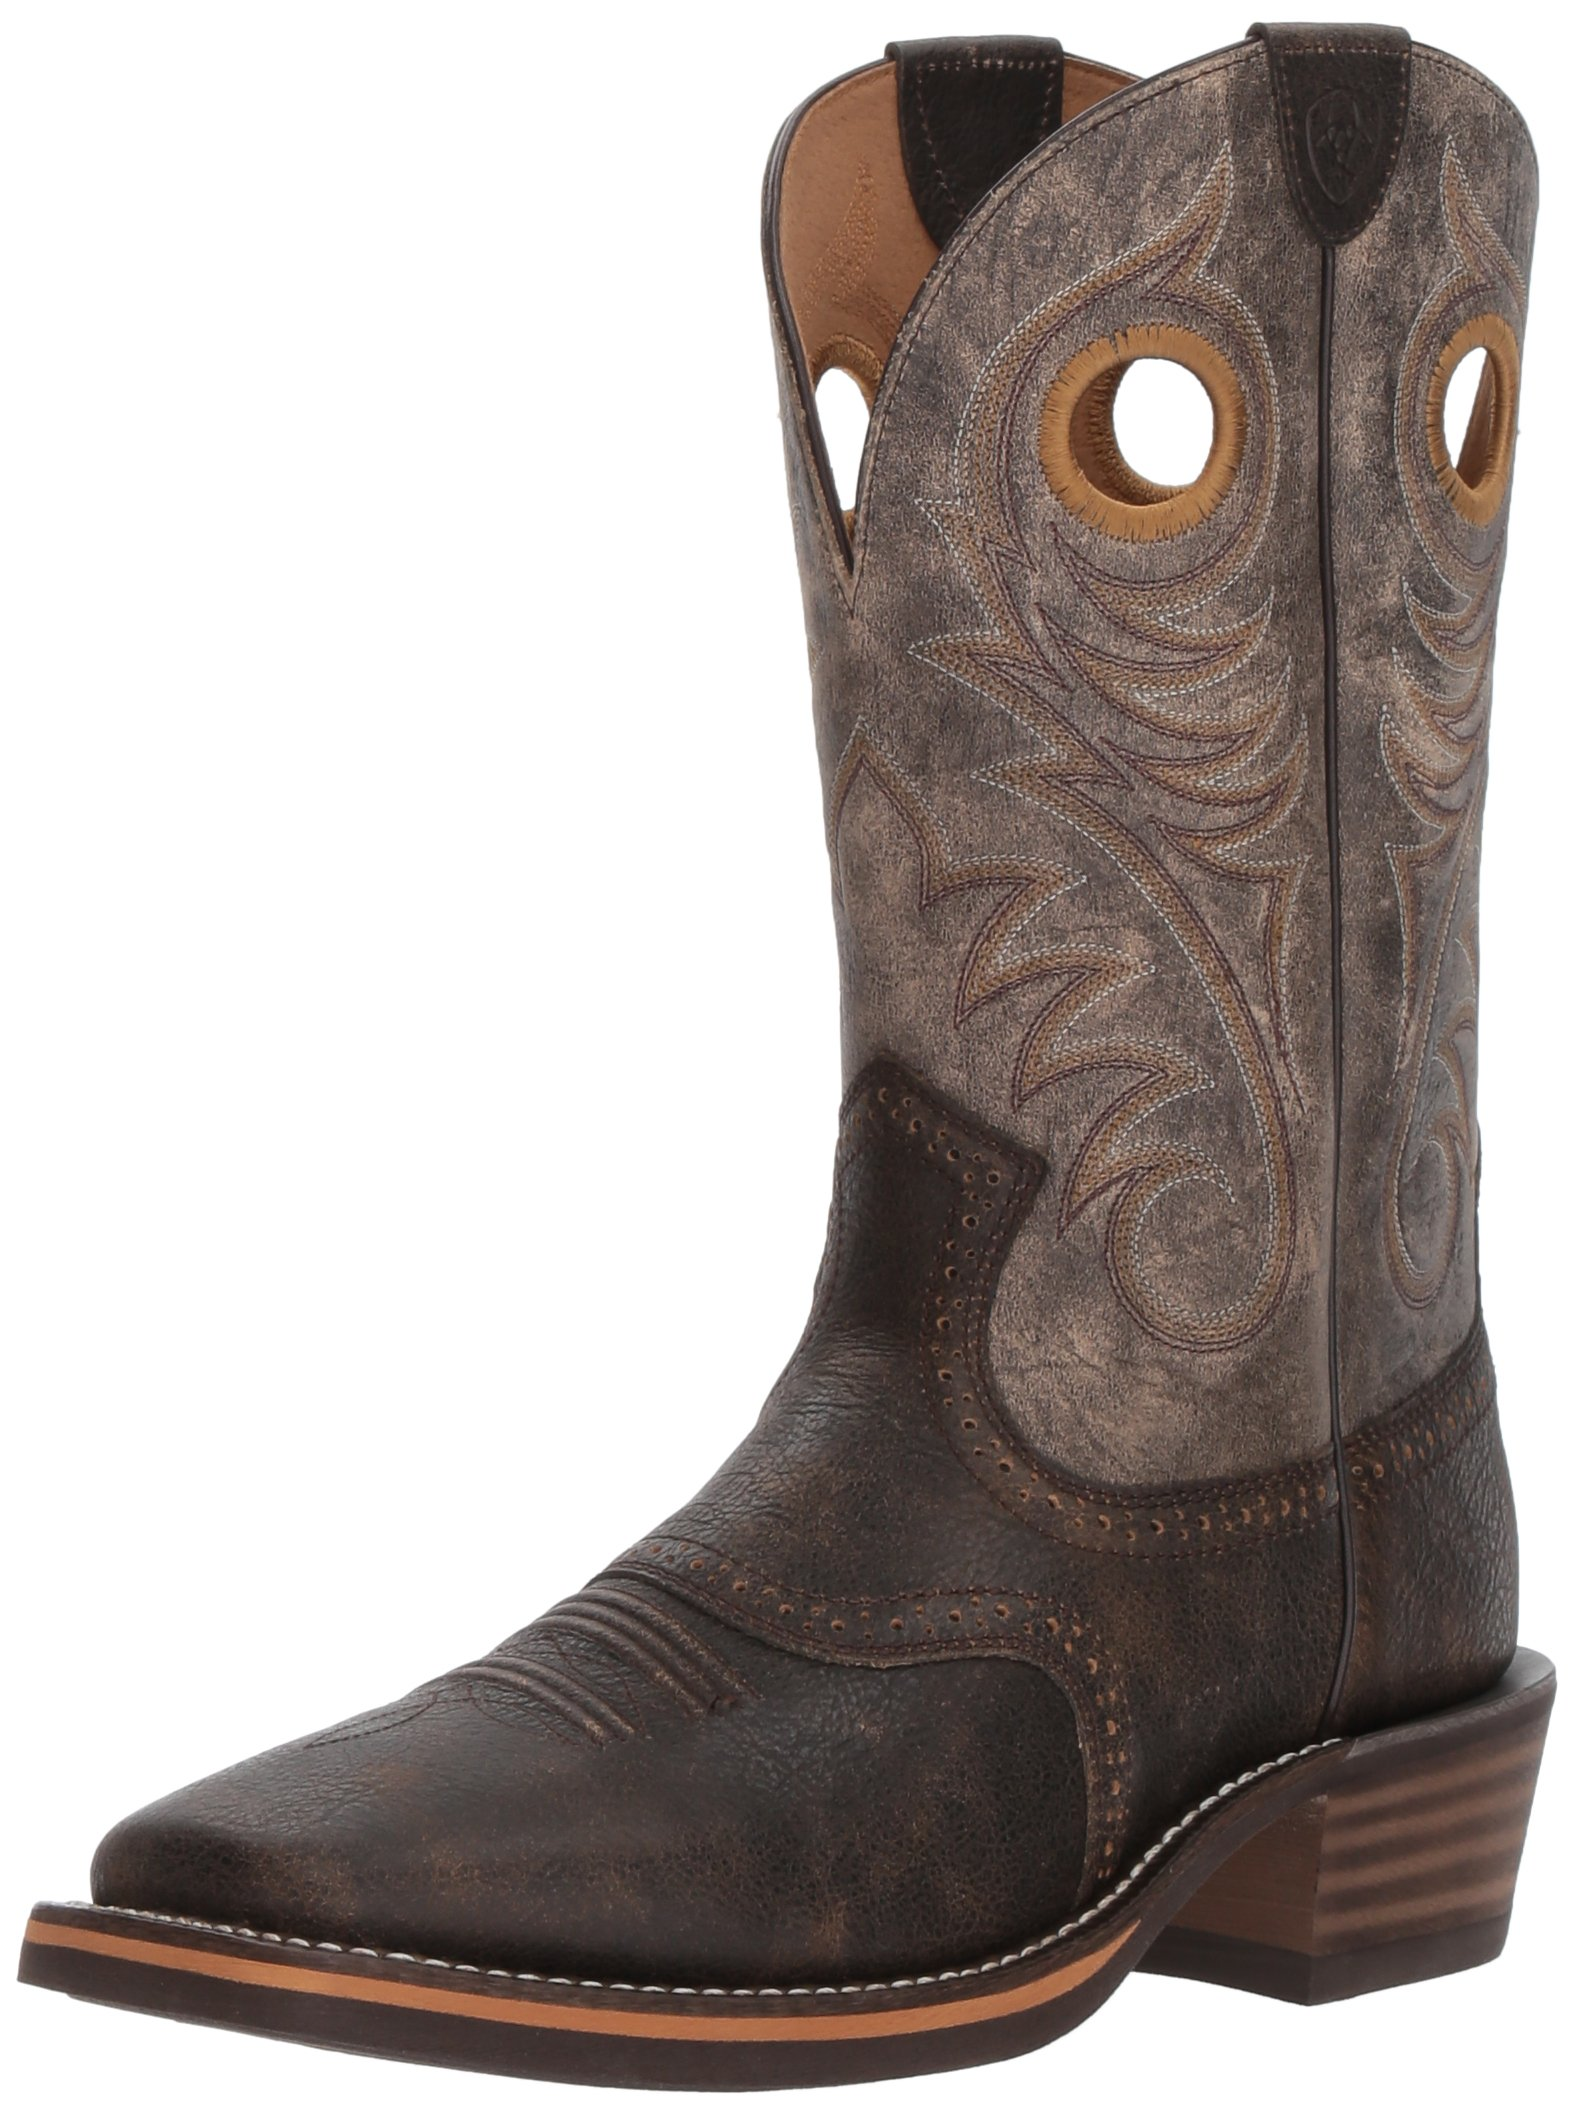 Ariat Men's Heritage Roughstock Wide Square Toe Western Boot, Brooklyn Brown/Ashes, 9.5 D US